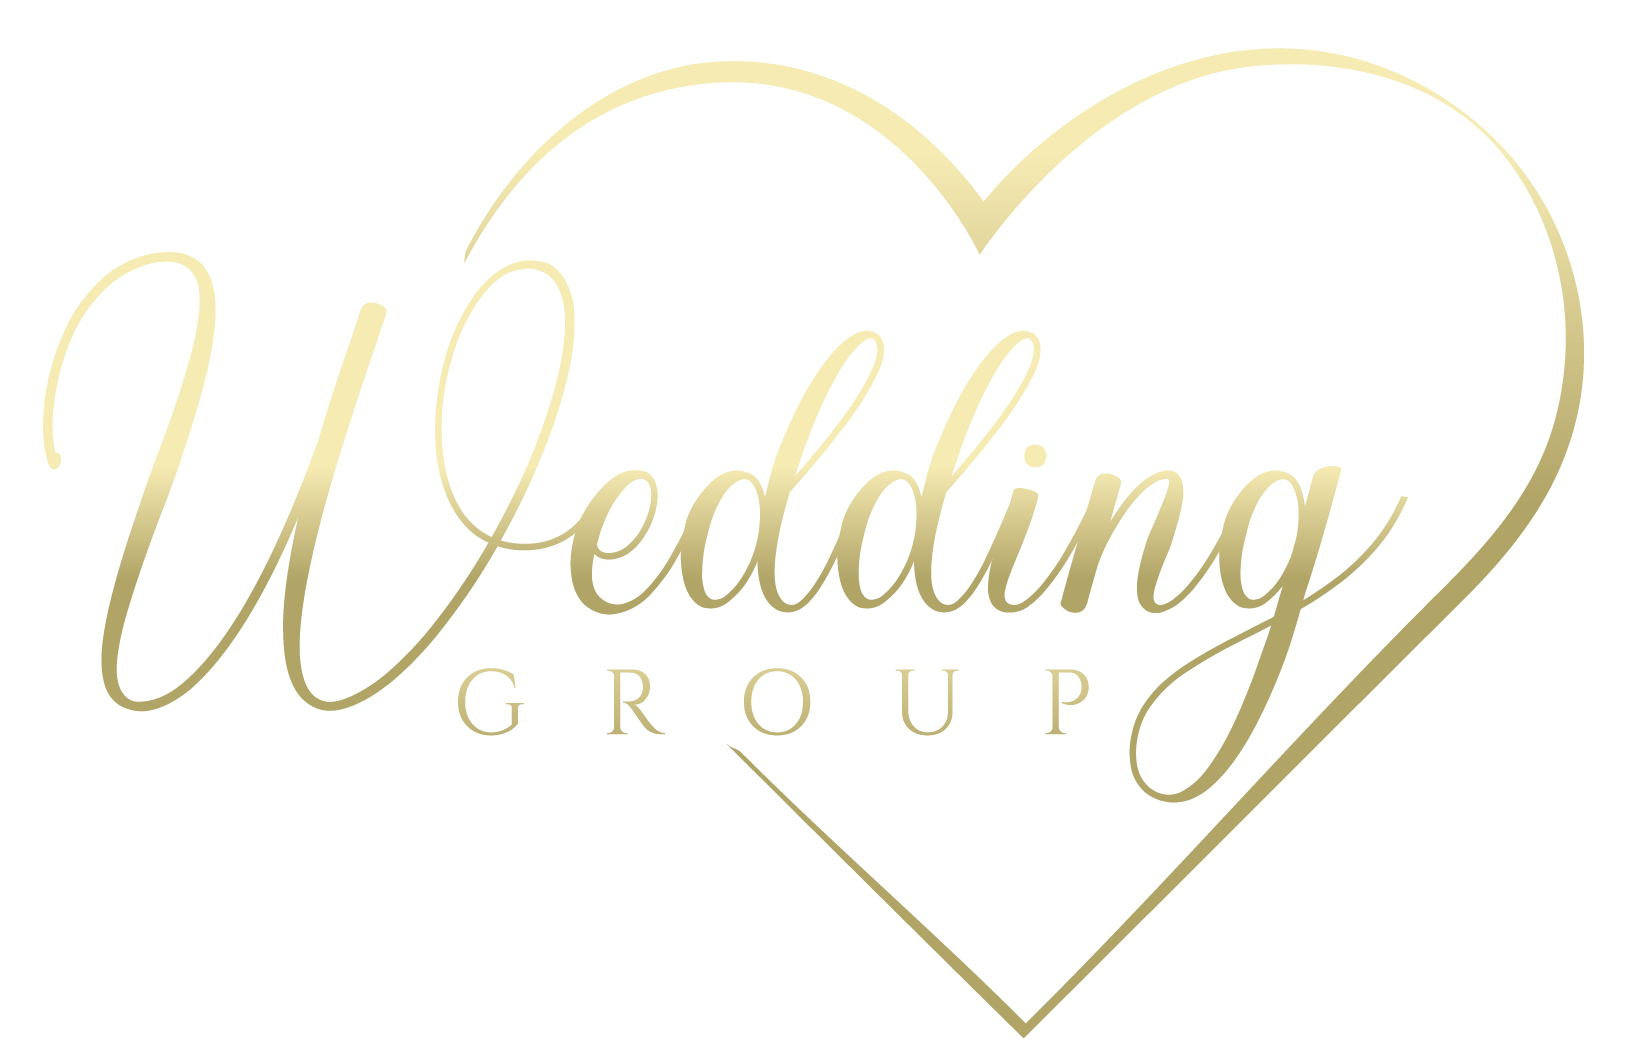 Wedding Group | Group Weddings Online | Online Wedding Group | Wedding Directory